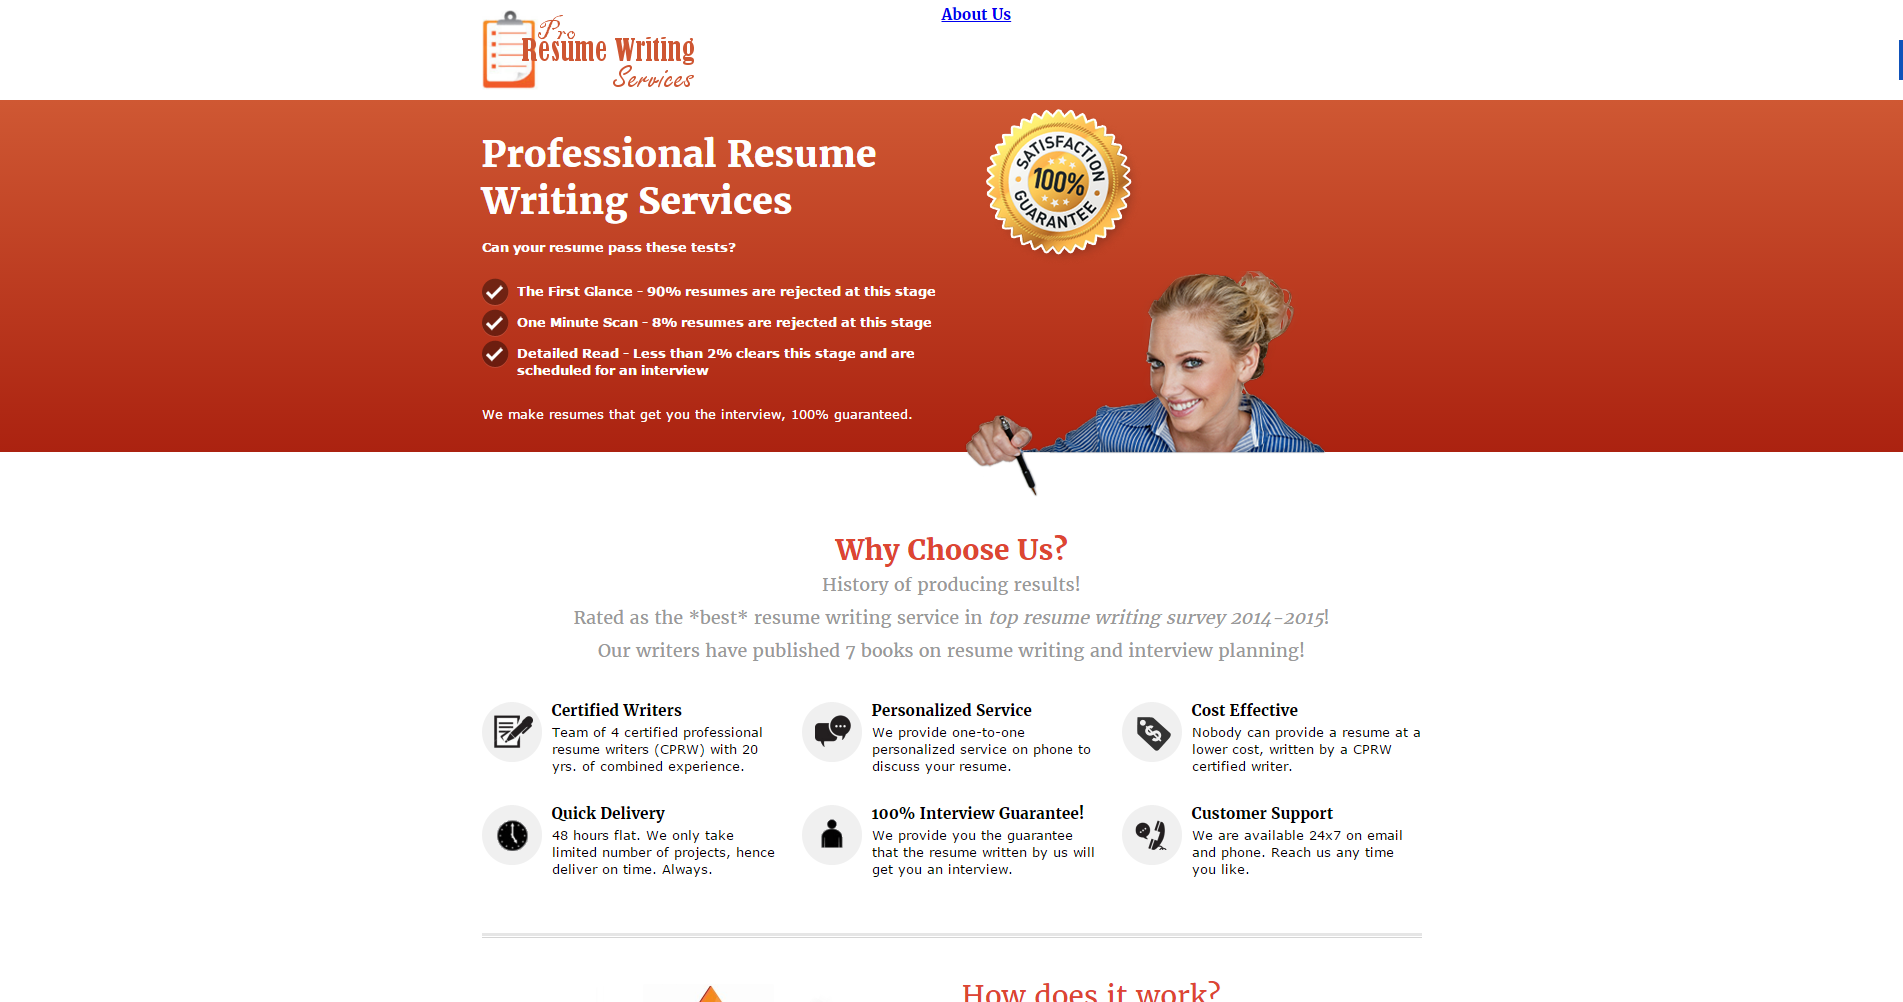 Pros and cons of resume writing services